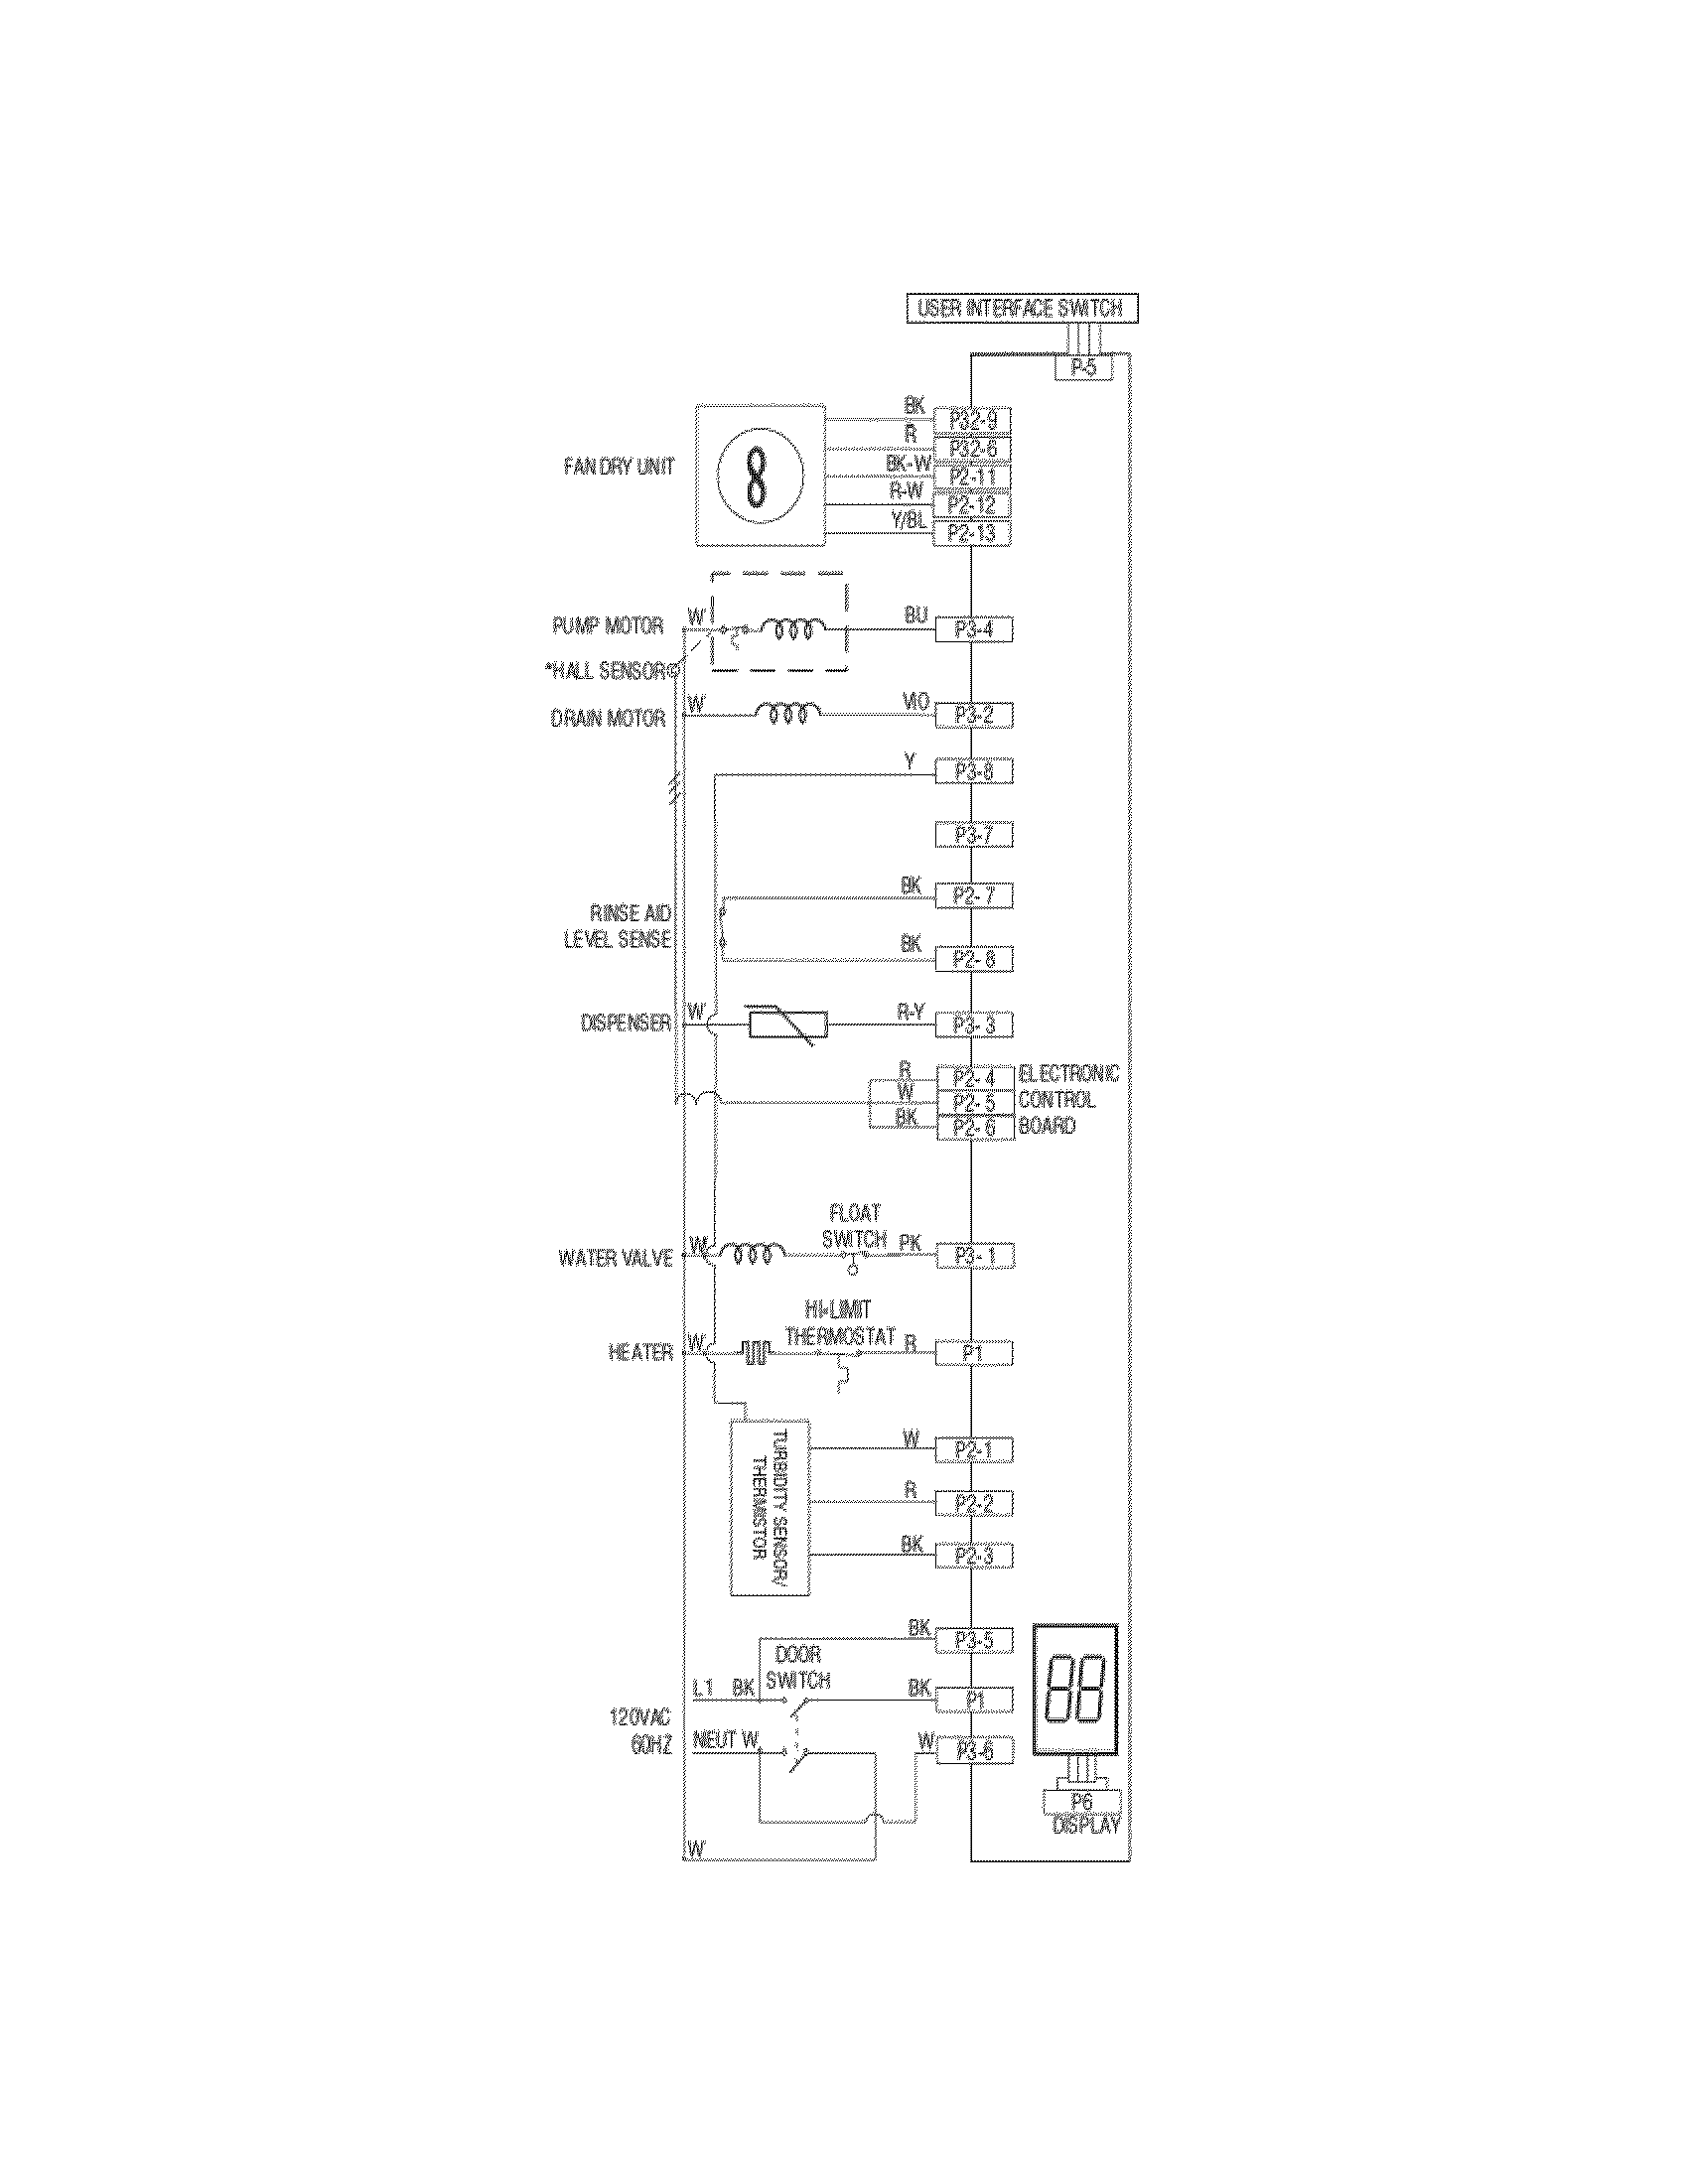 hight resolution of frigidaire dishwasher wiring diagram 36 wiring diagram images